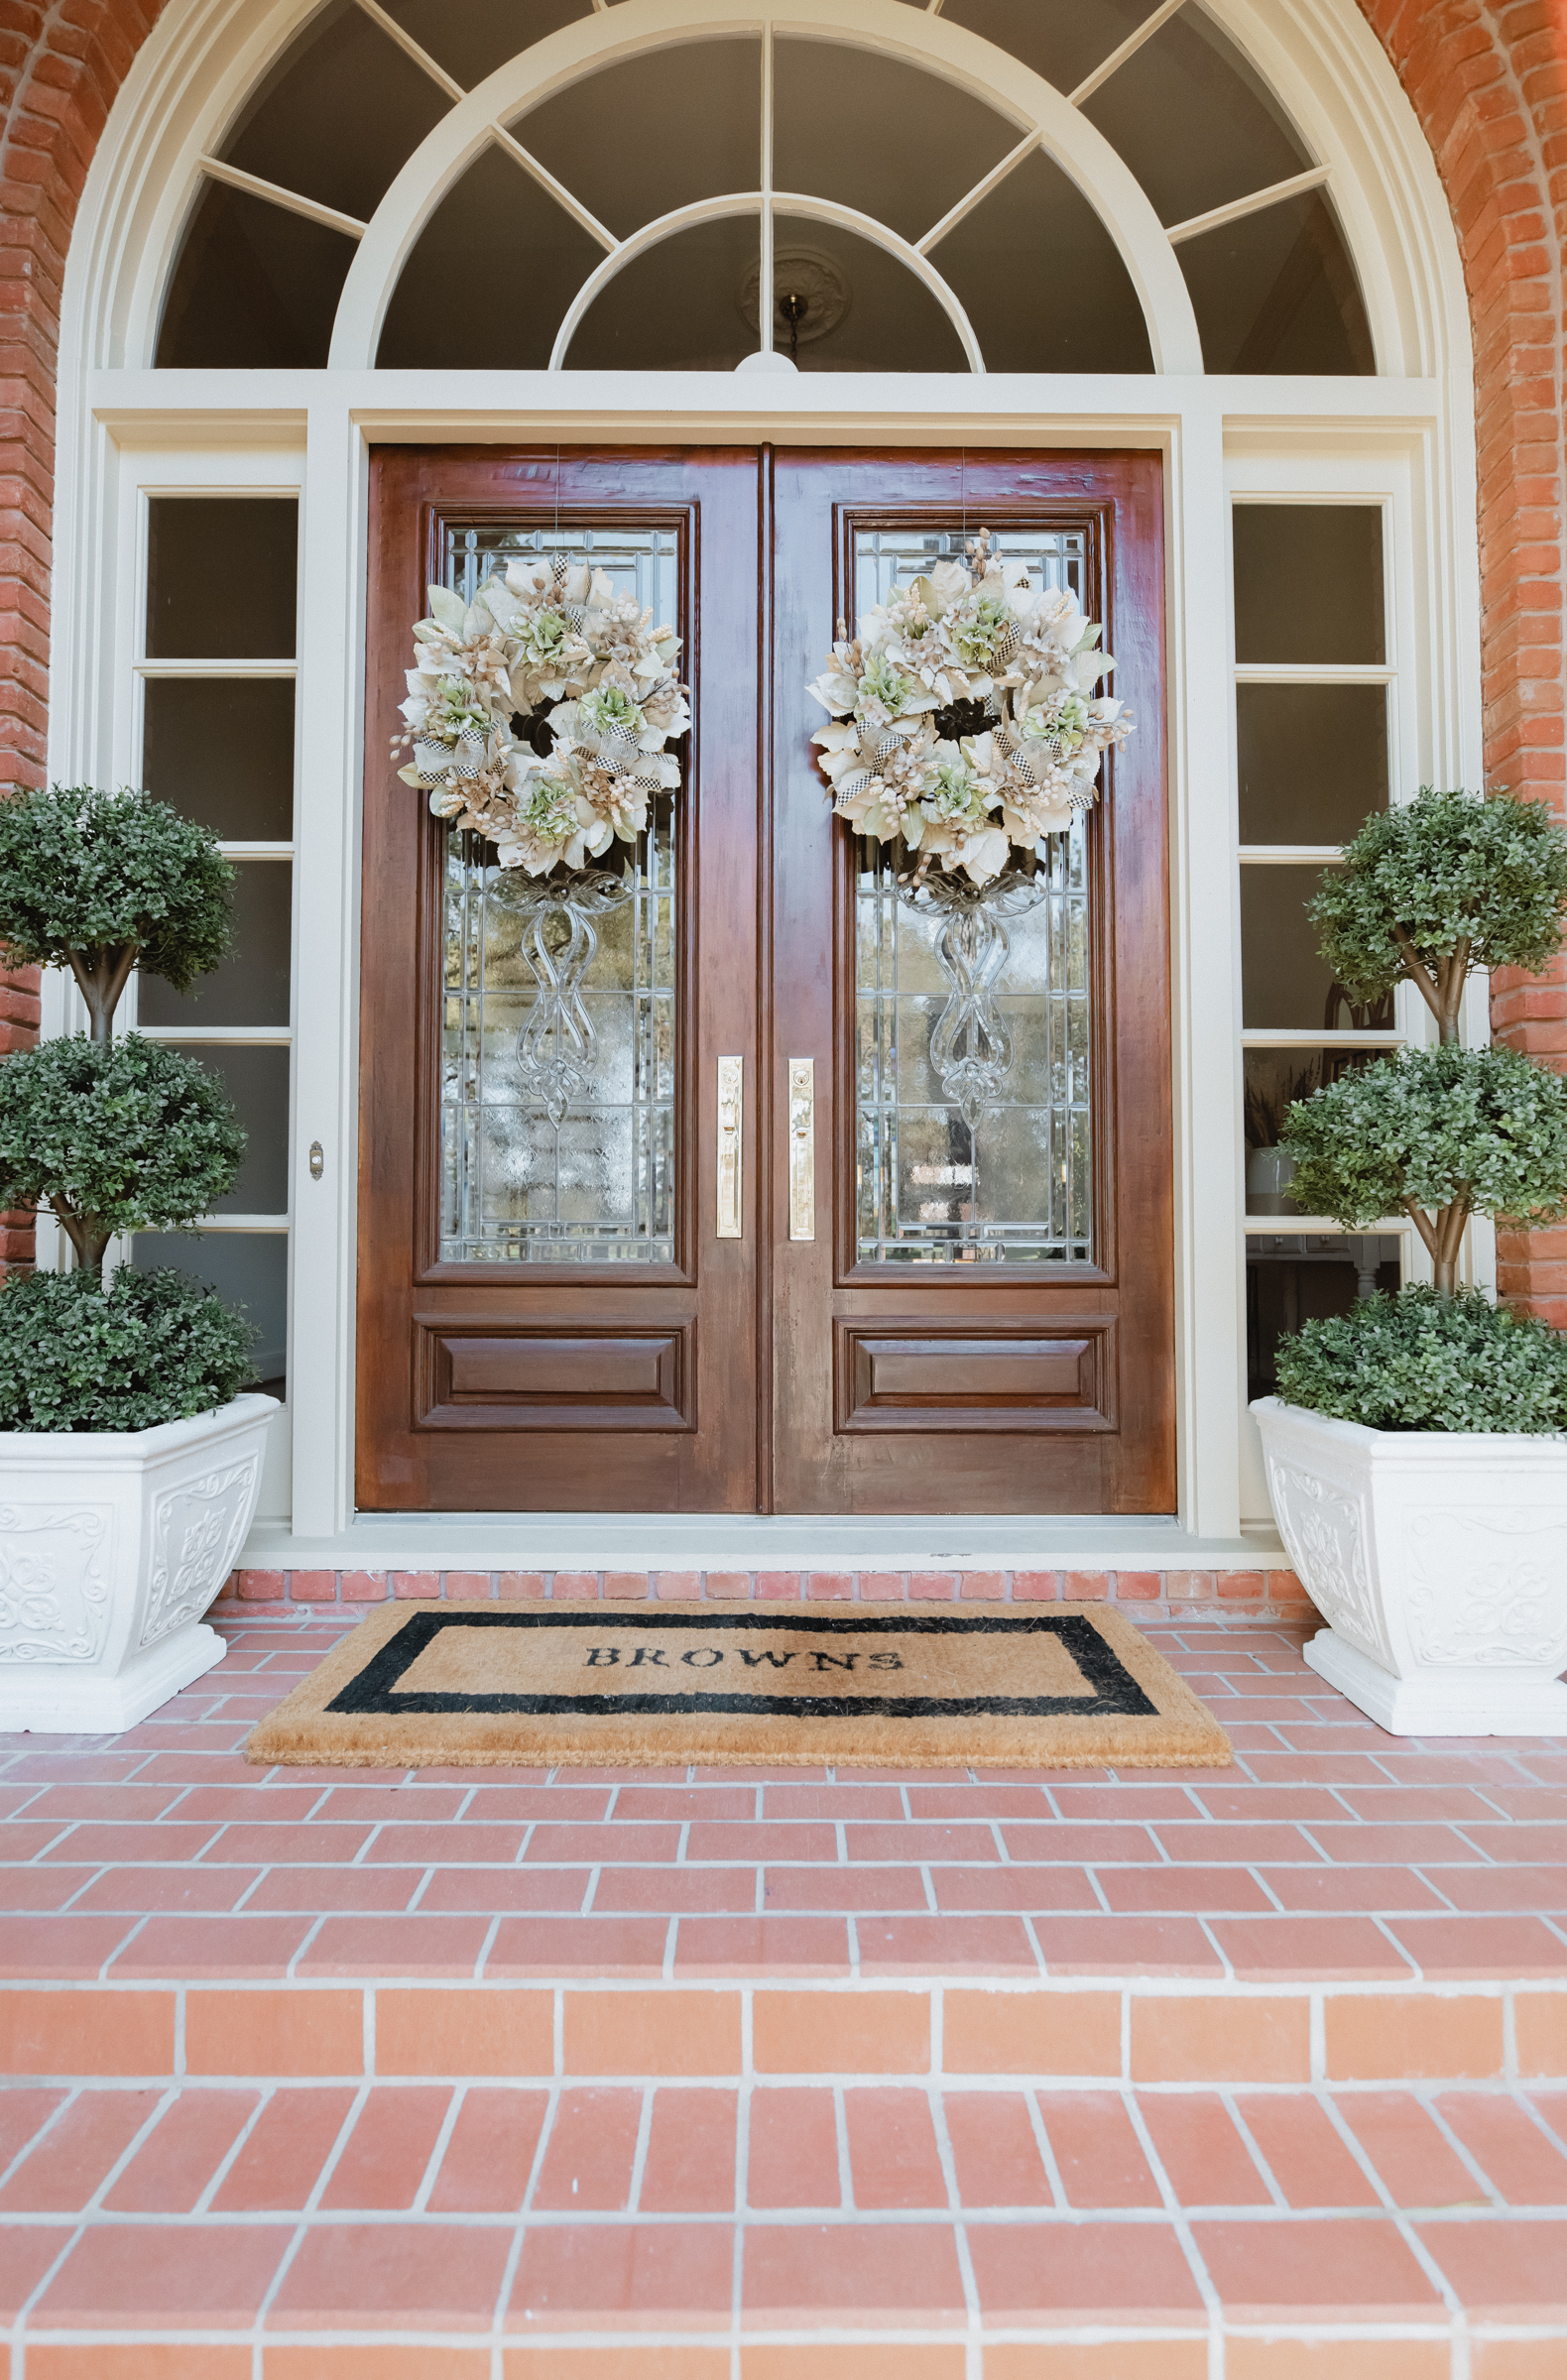 Elly Brown shares her front porch decor for Spring that's simple and elegant